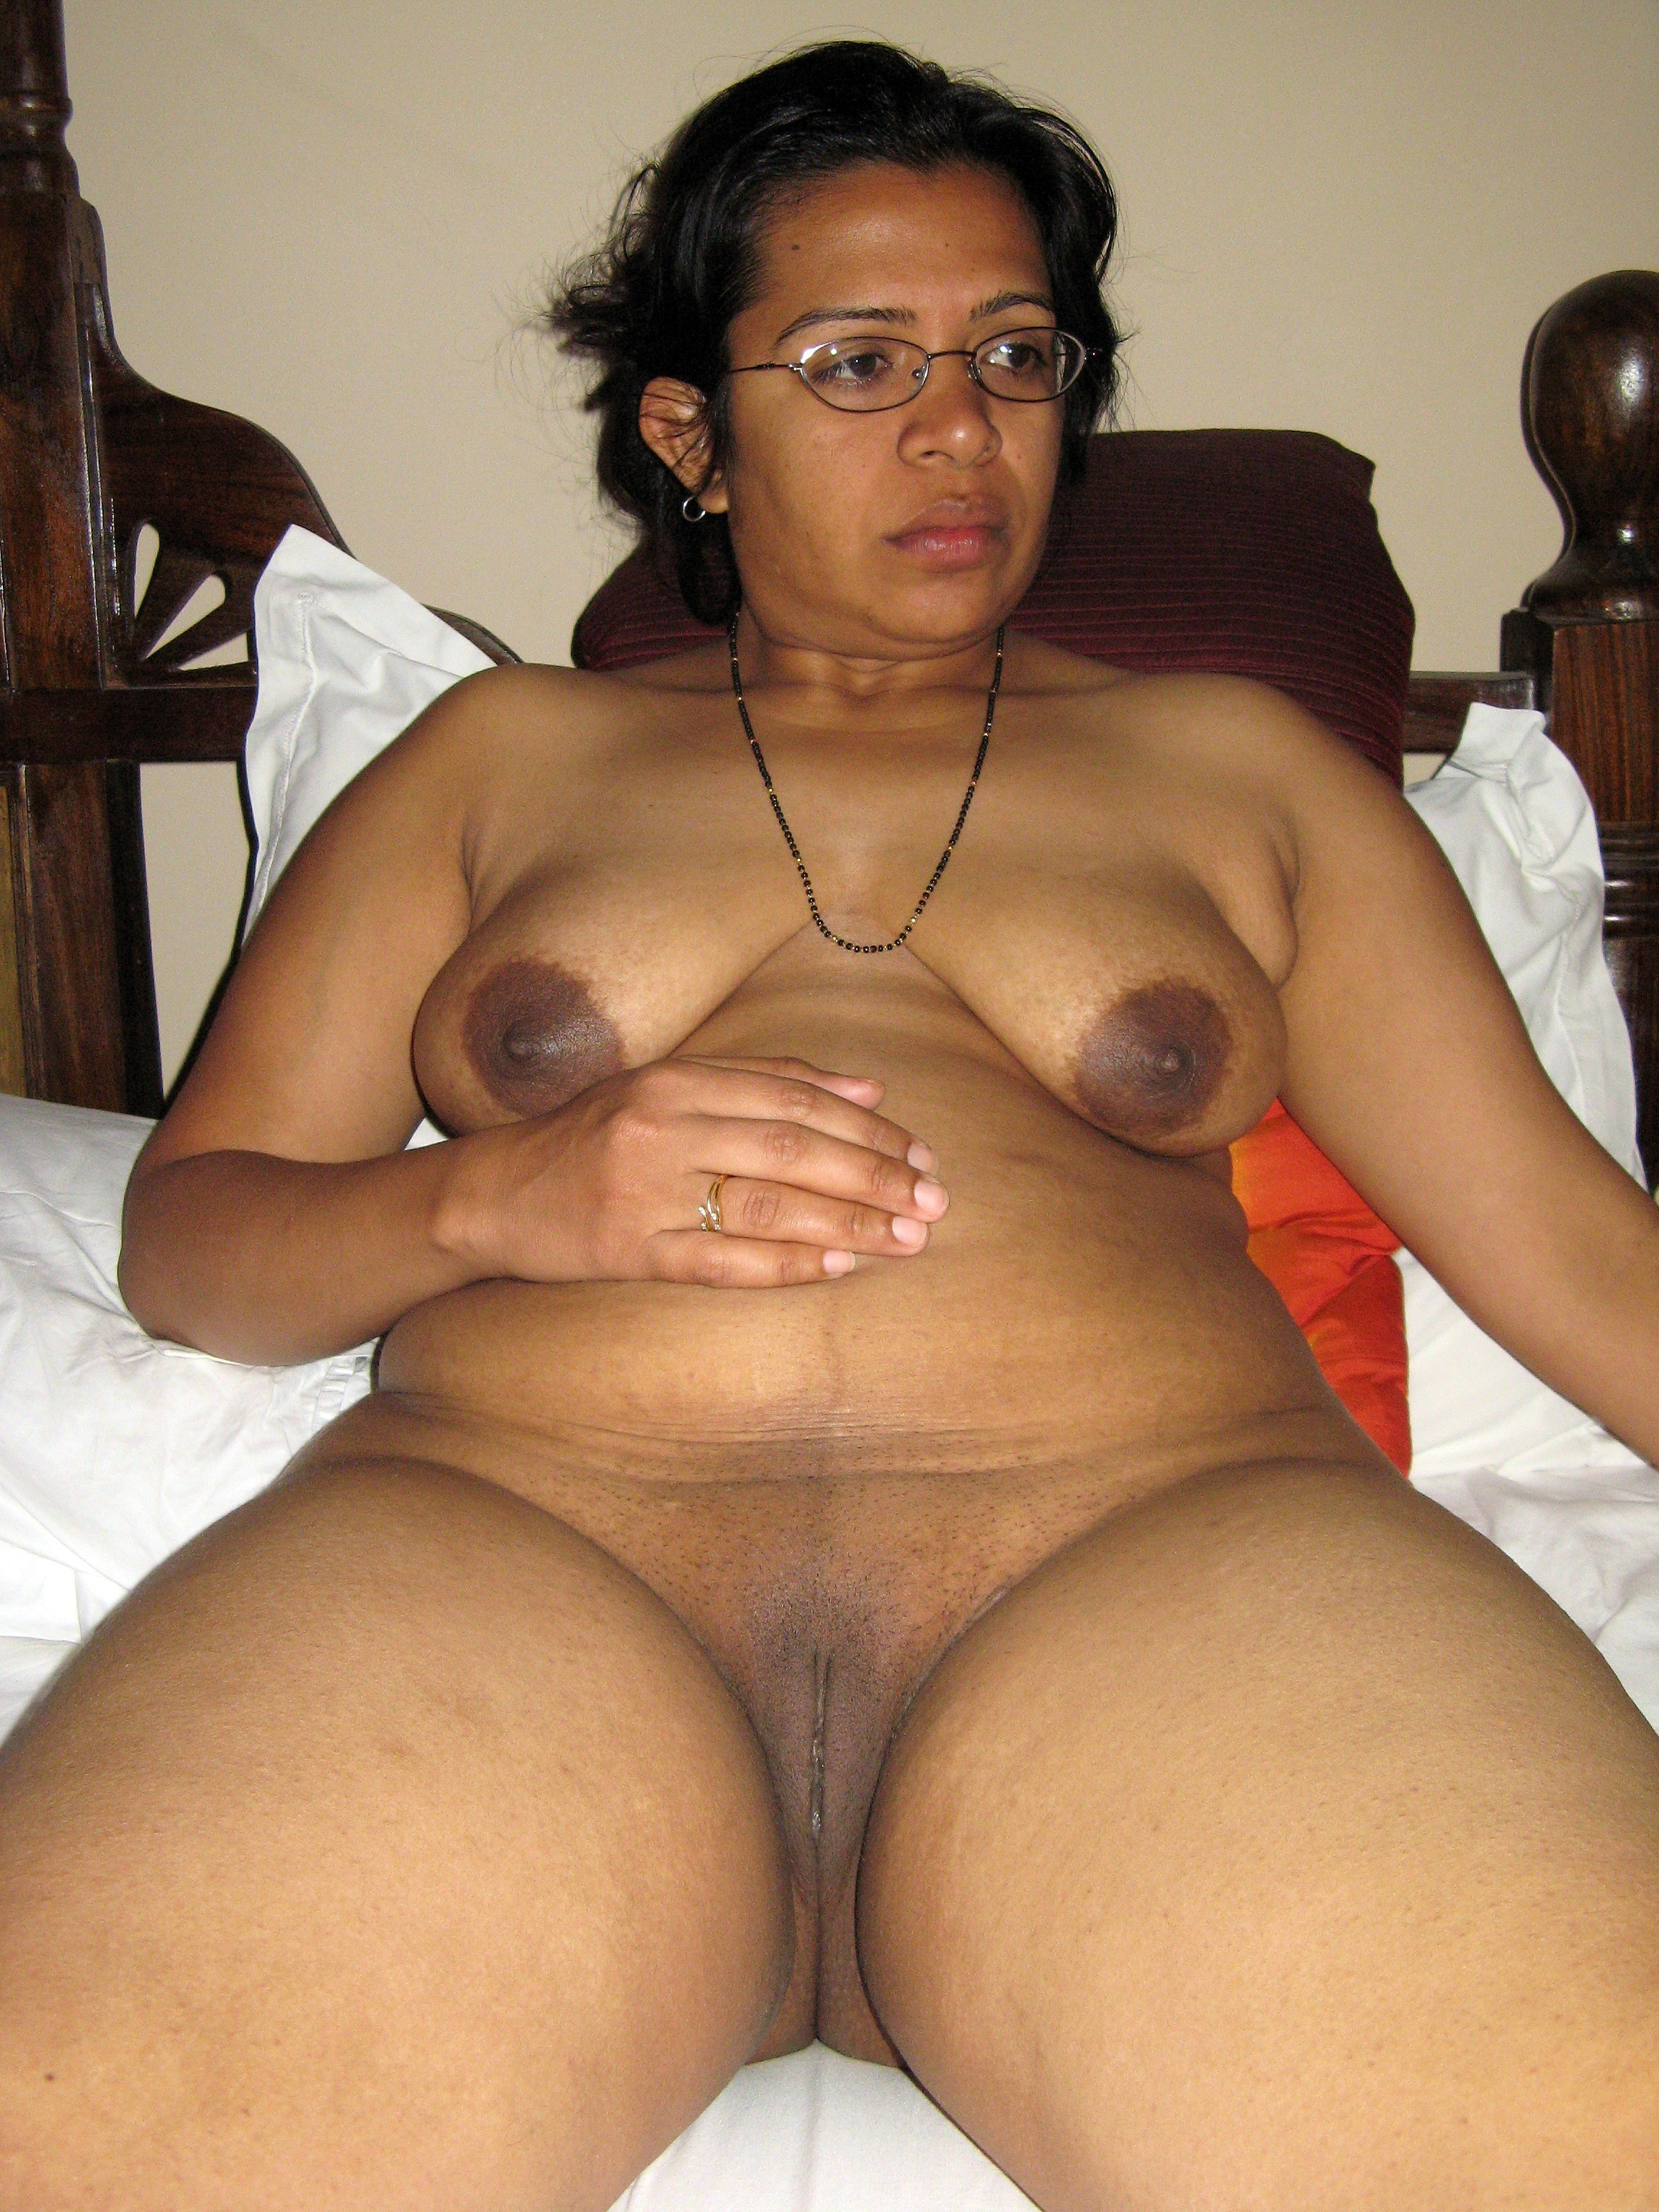 Pakistani sex photo blogUnseenMMScom  Pakistani desi